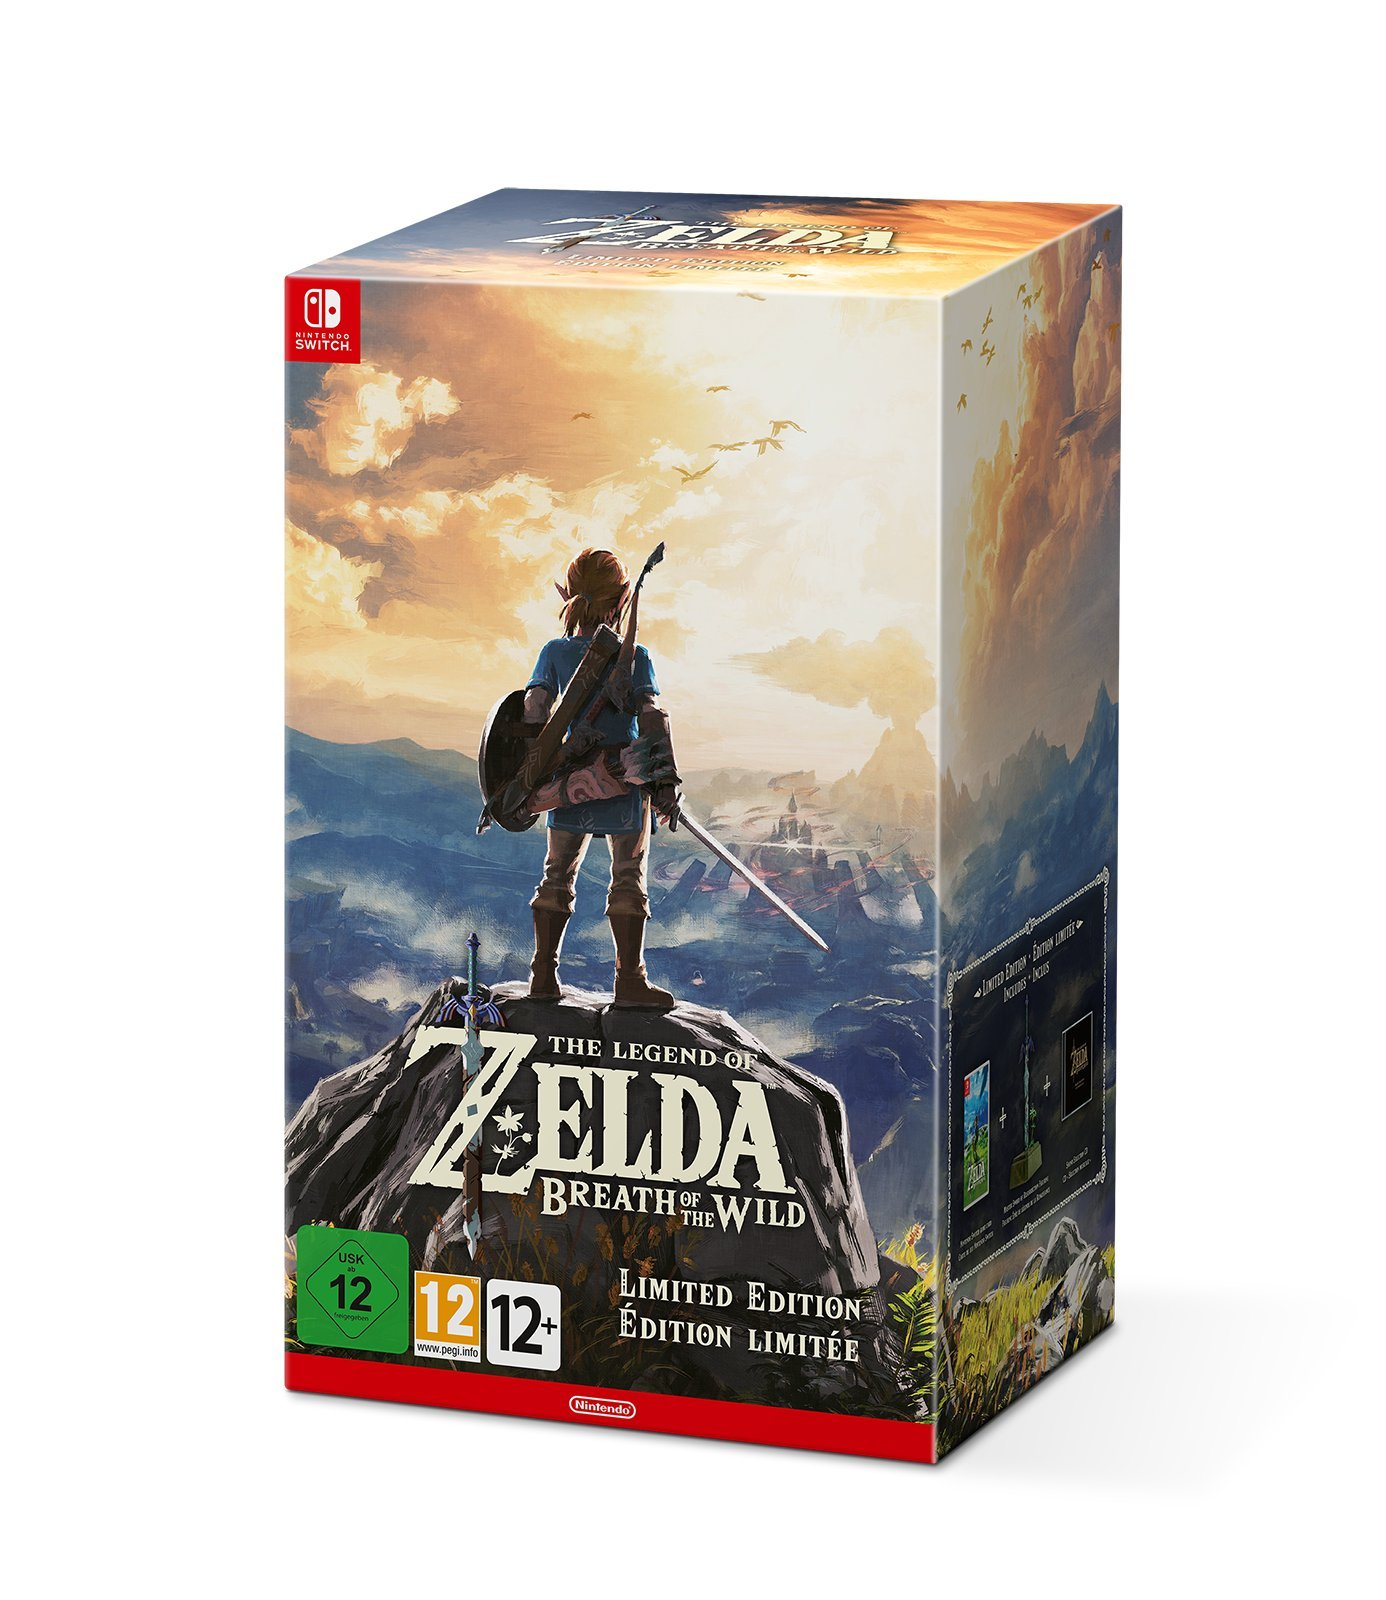 The Legend Of Zelda: Breath Of The Wild (Edición Limitada): Amazon.es: Videojuegos